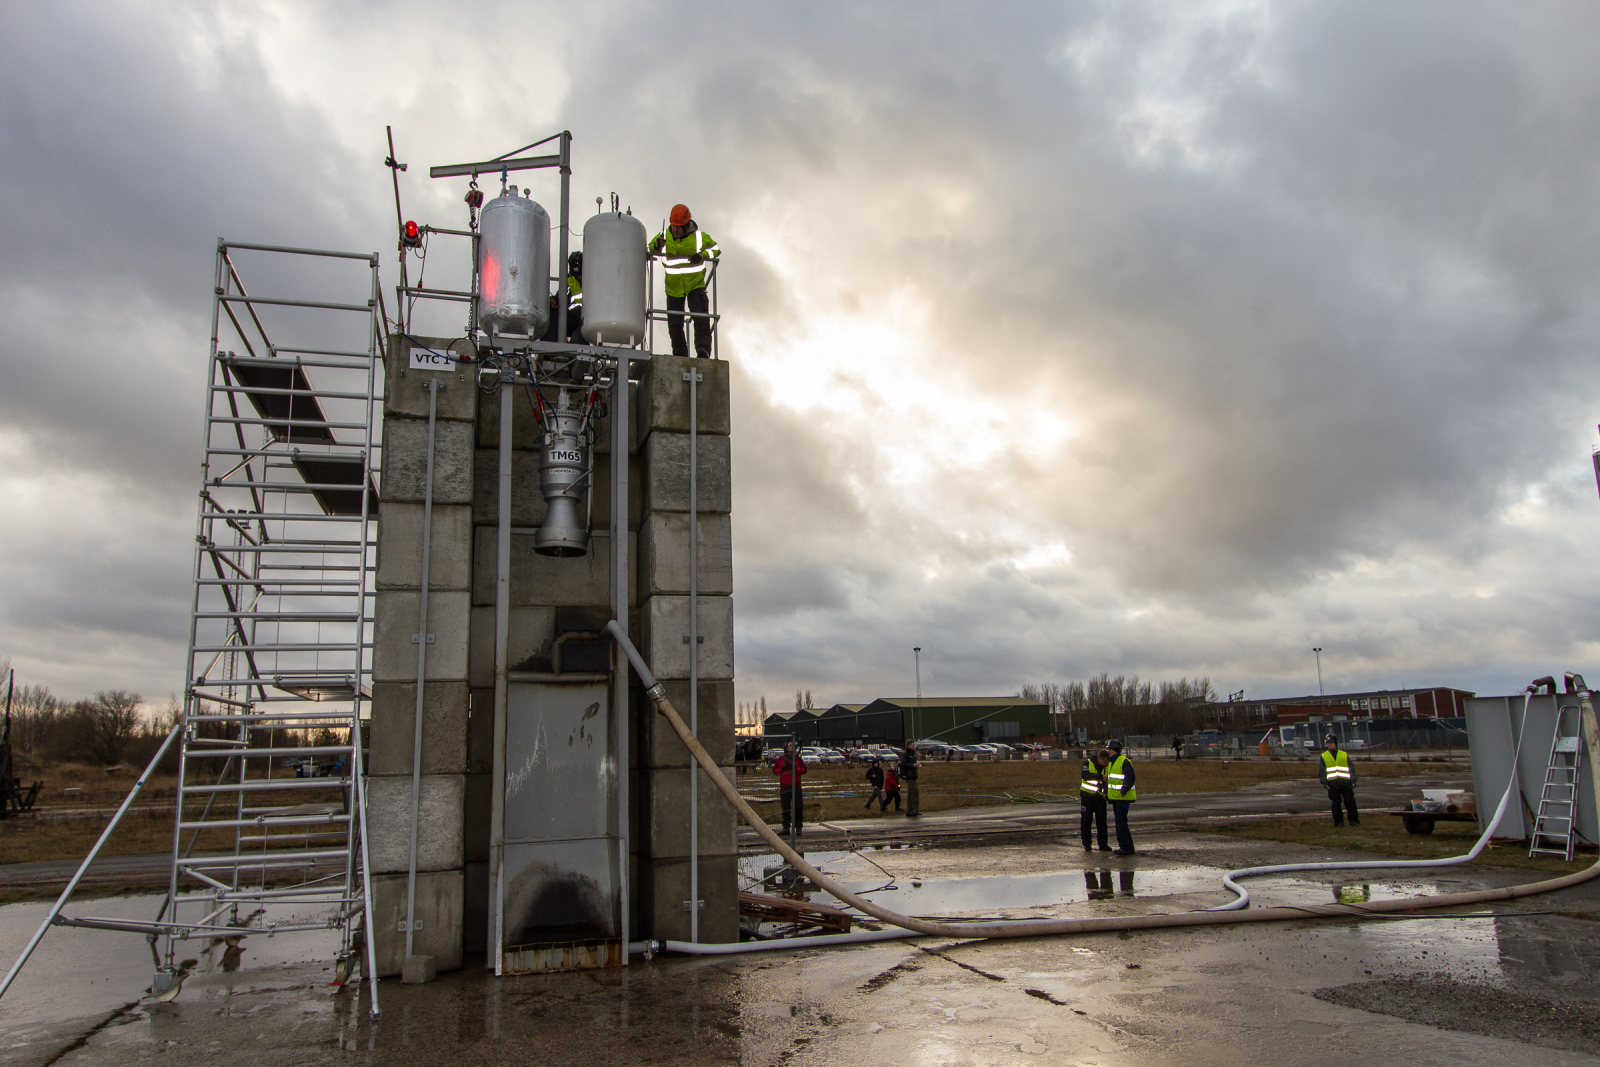 The VTC-1 teststand with the TM-65 engine. Foto: Thomas Pedersen/Copenhagen Suborbitals